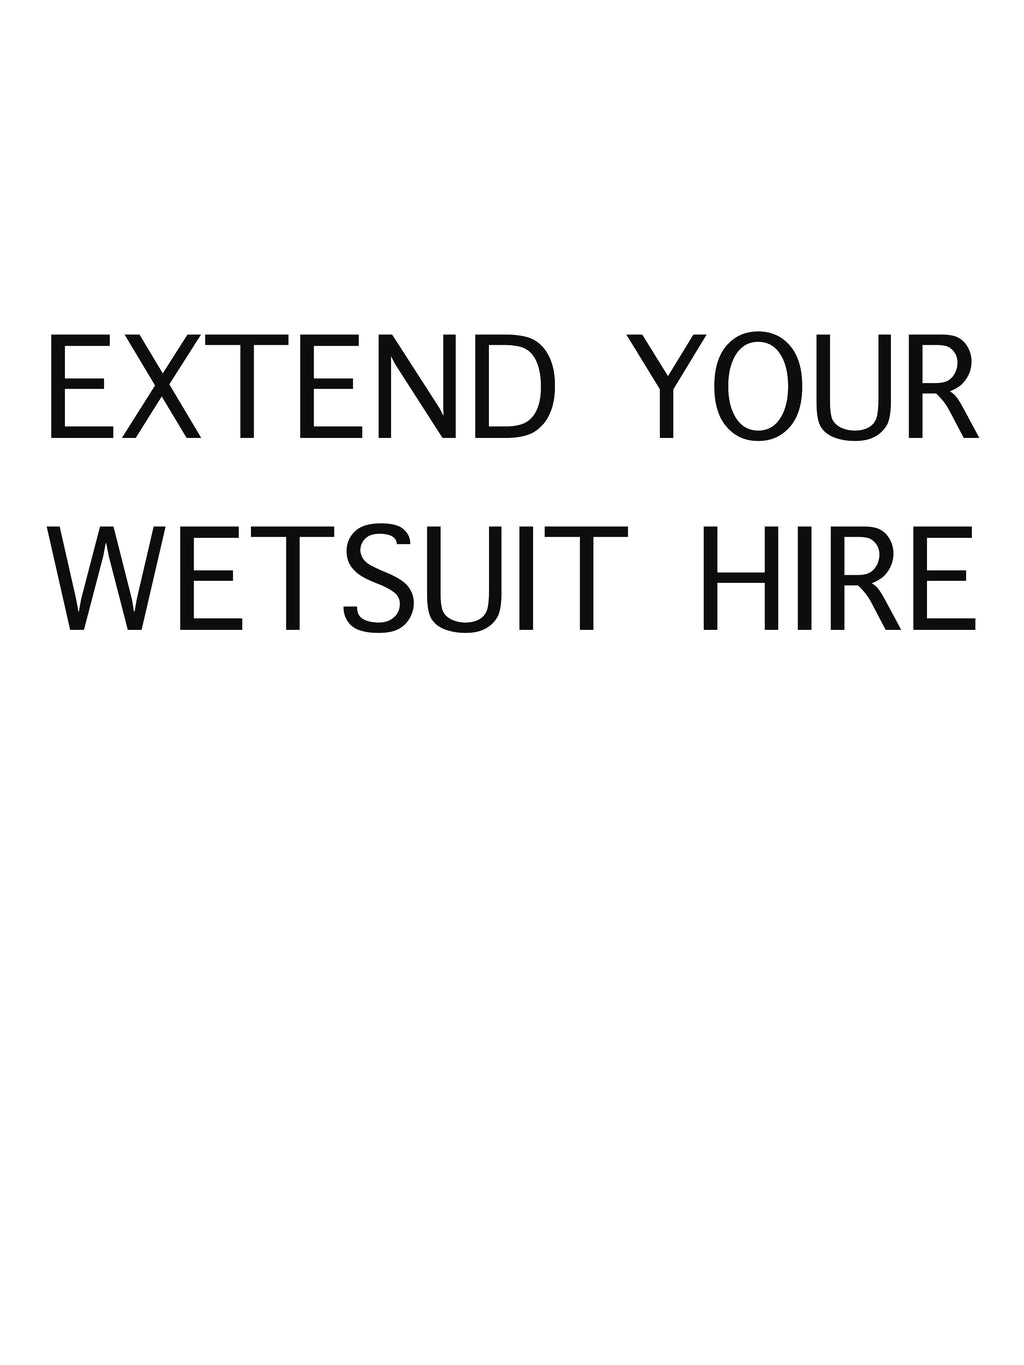 wetsuit hire extension from 14 days to 1 month